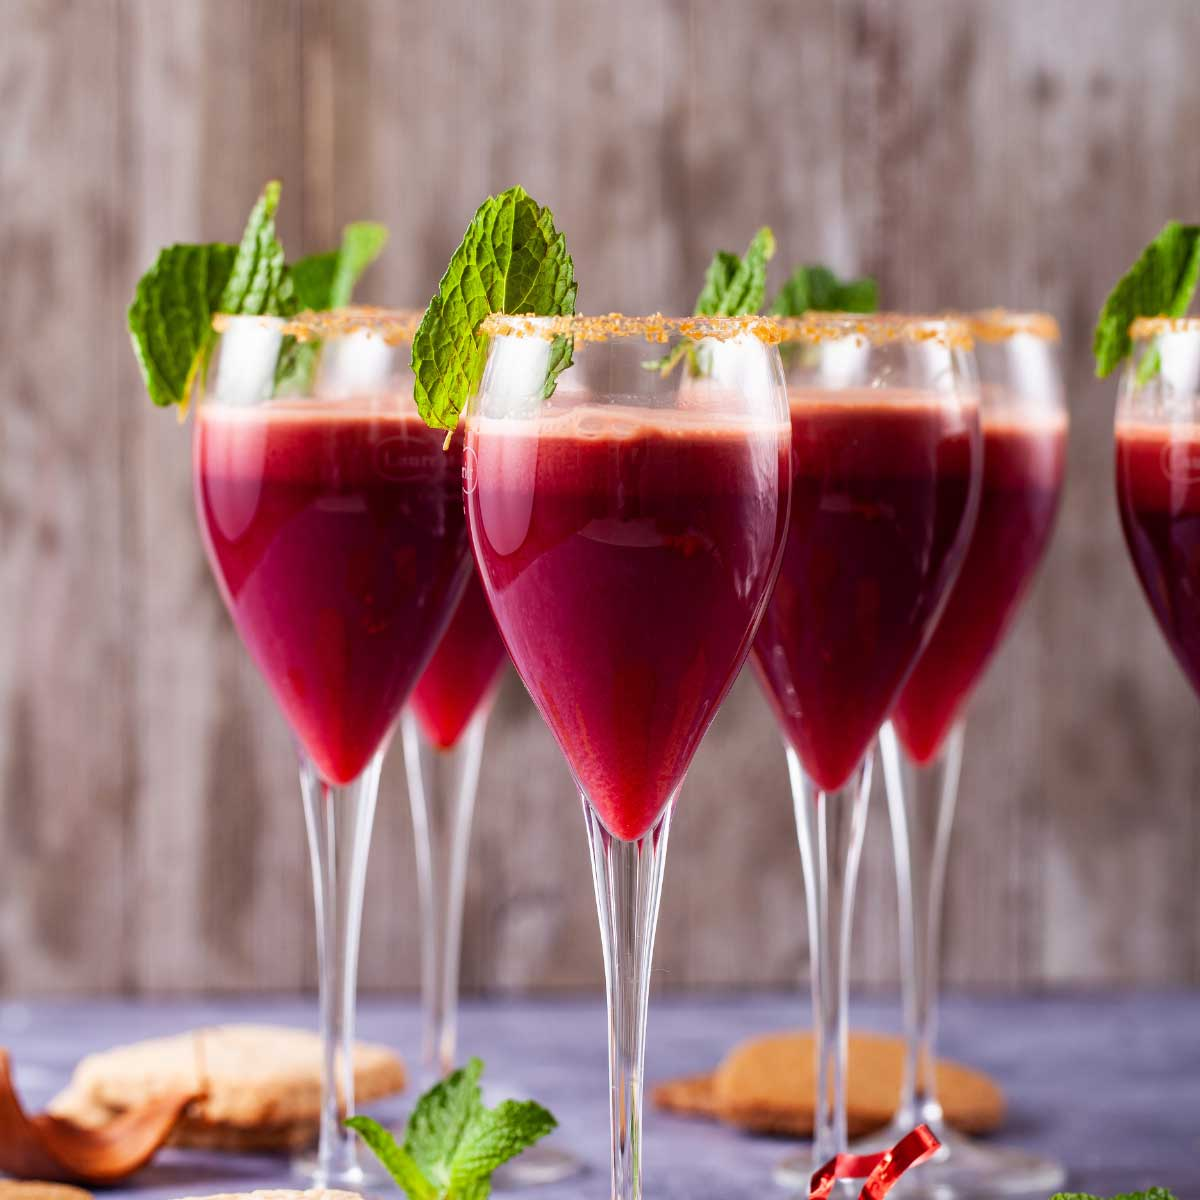 A close-up of champagne glasses with a sugary rim, filled with a red drink, garnished with mint leaves and served with cookies on the side.